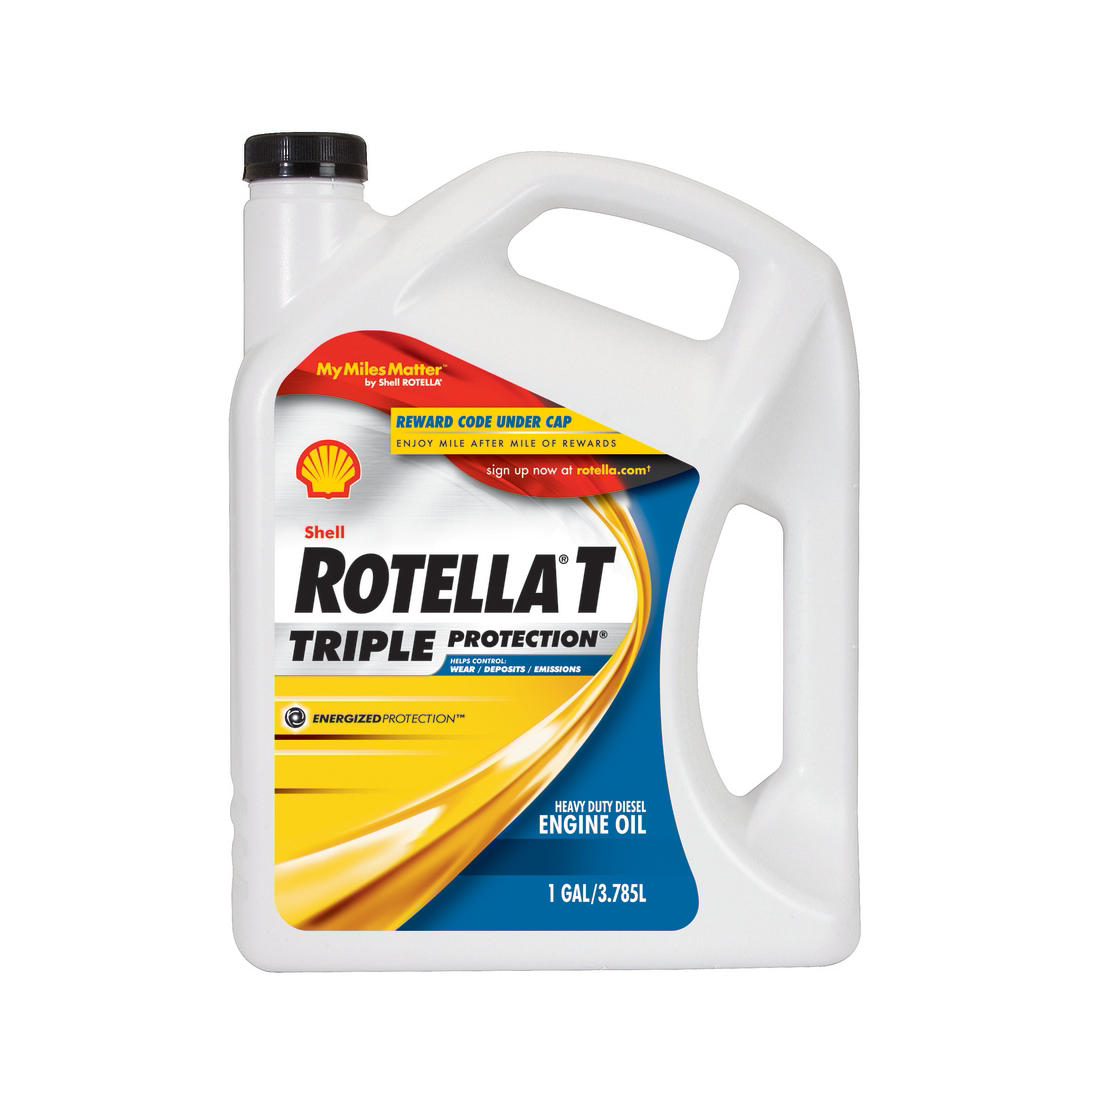 15w40 Diesel Oil >> Shell Rotella T Triple Protection Action 15w 40 Heavy Duty Diesel Engine Oil 6 Pk 1 Gal